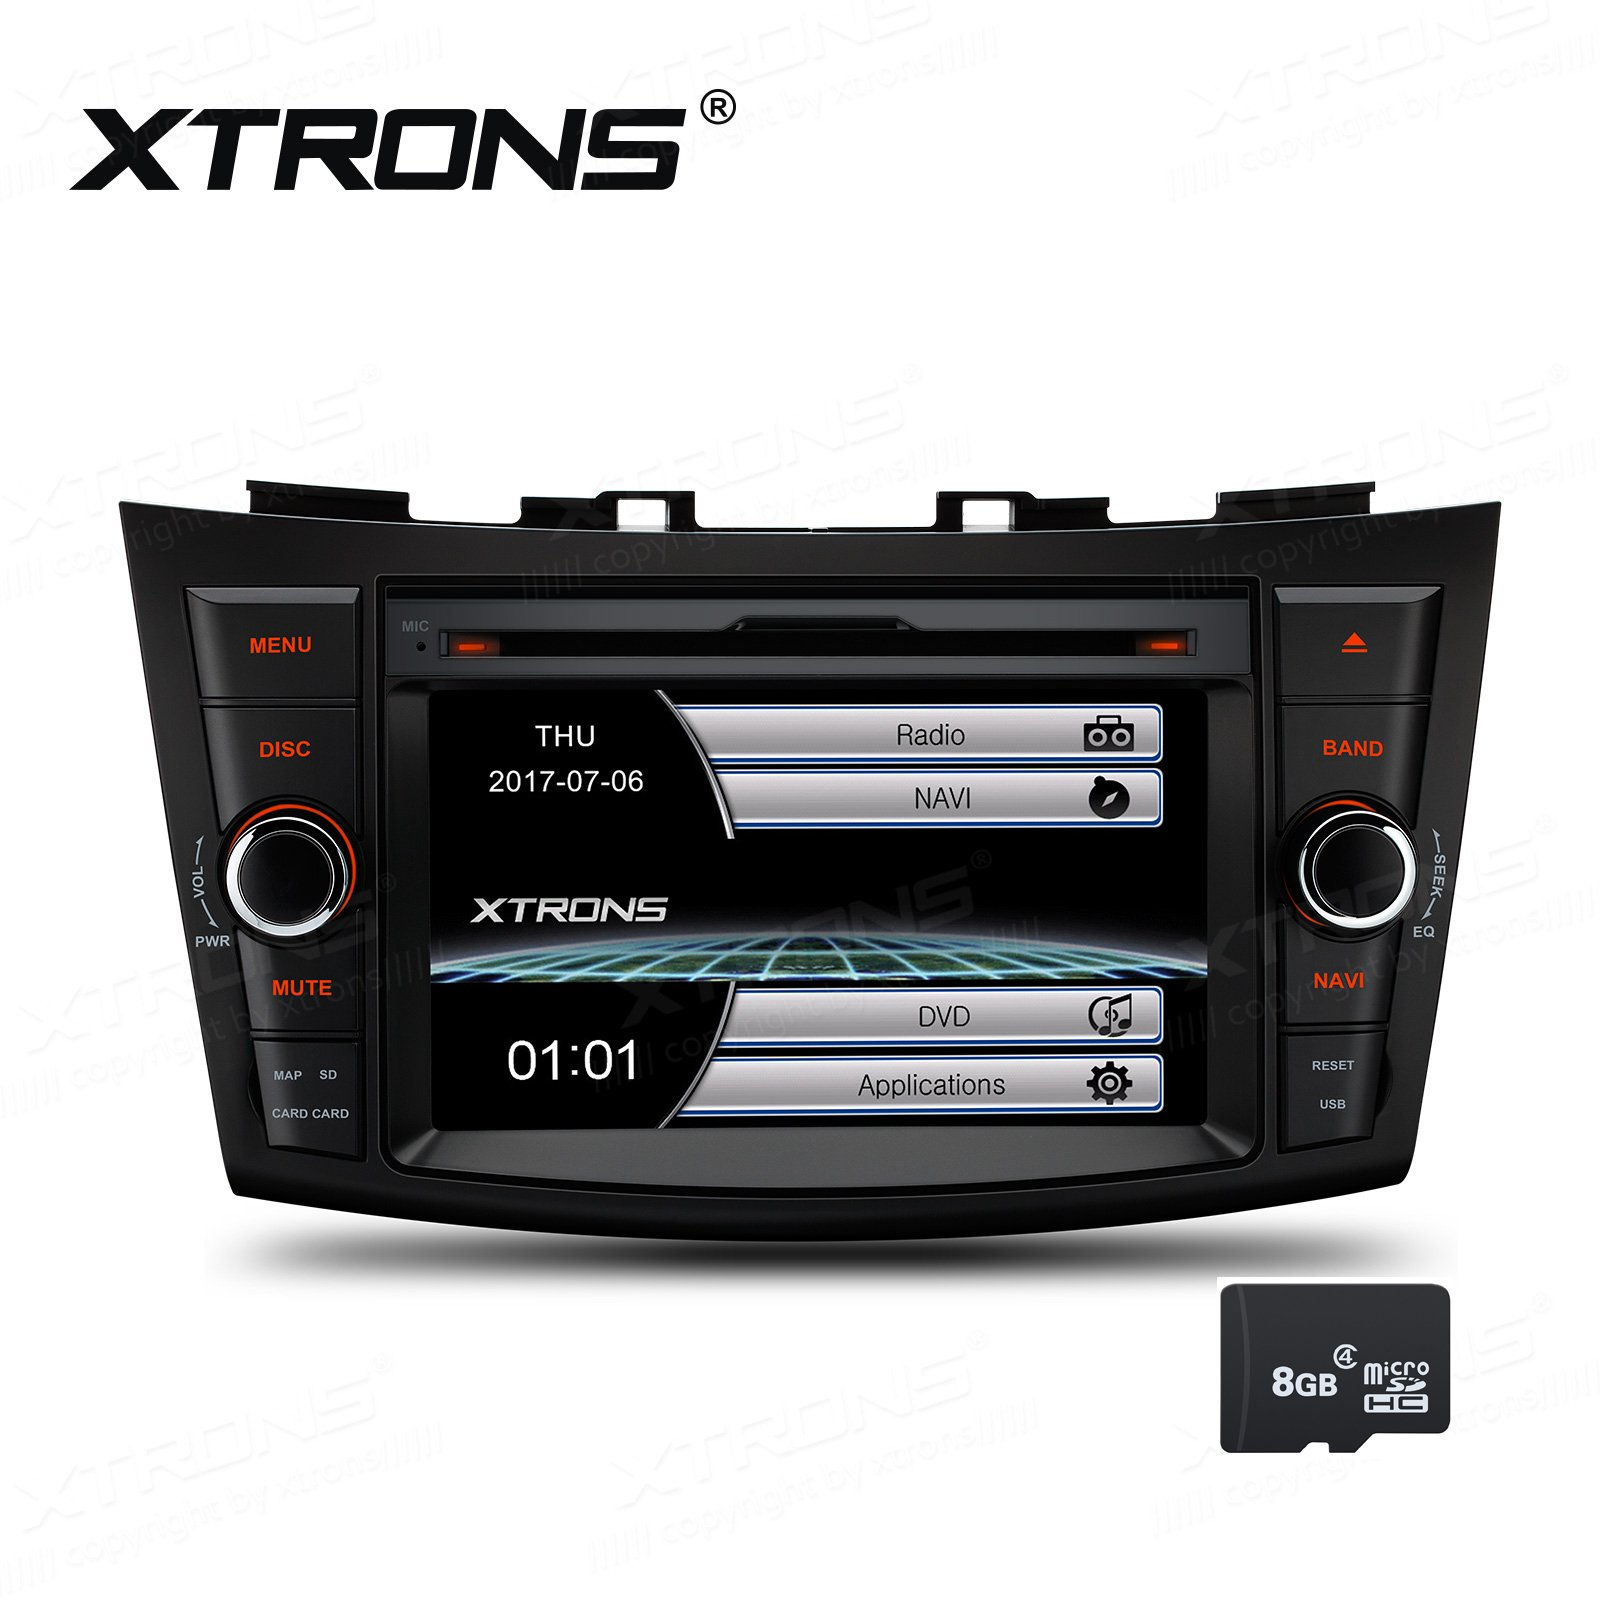 XTRONS 7 Inch HD Digital Touch Screen Car Stereo In-Dash DVD Player with GPS CANbus Screen Mirroring for Suzuki Swift Ertiga Kudos Map Card Included by XTRONS